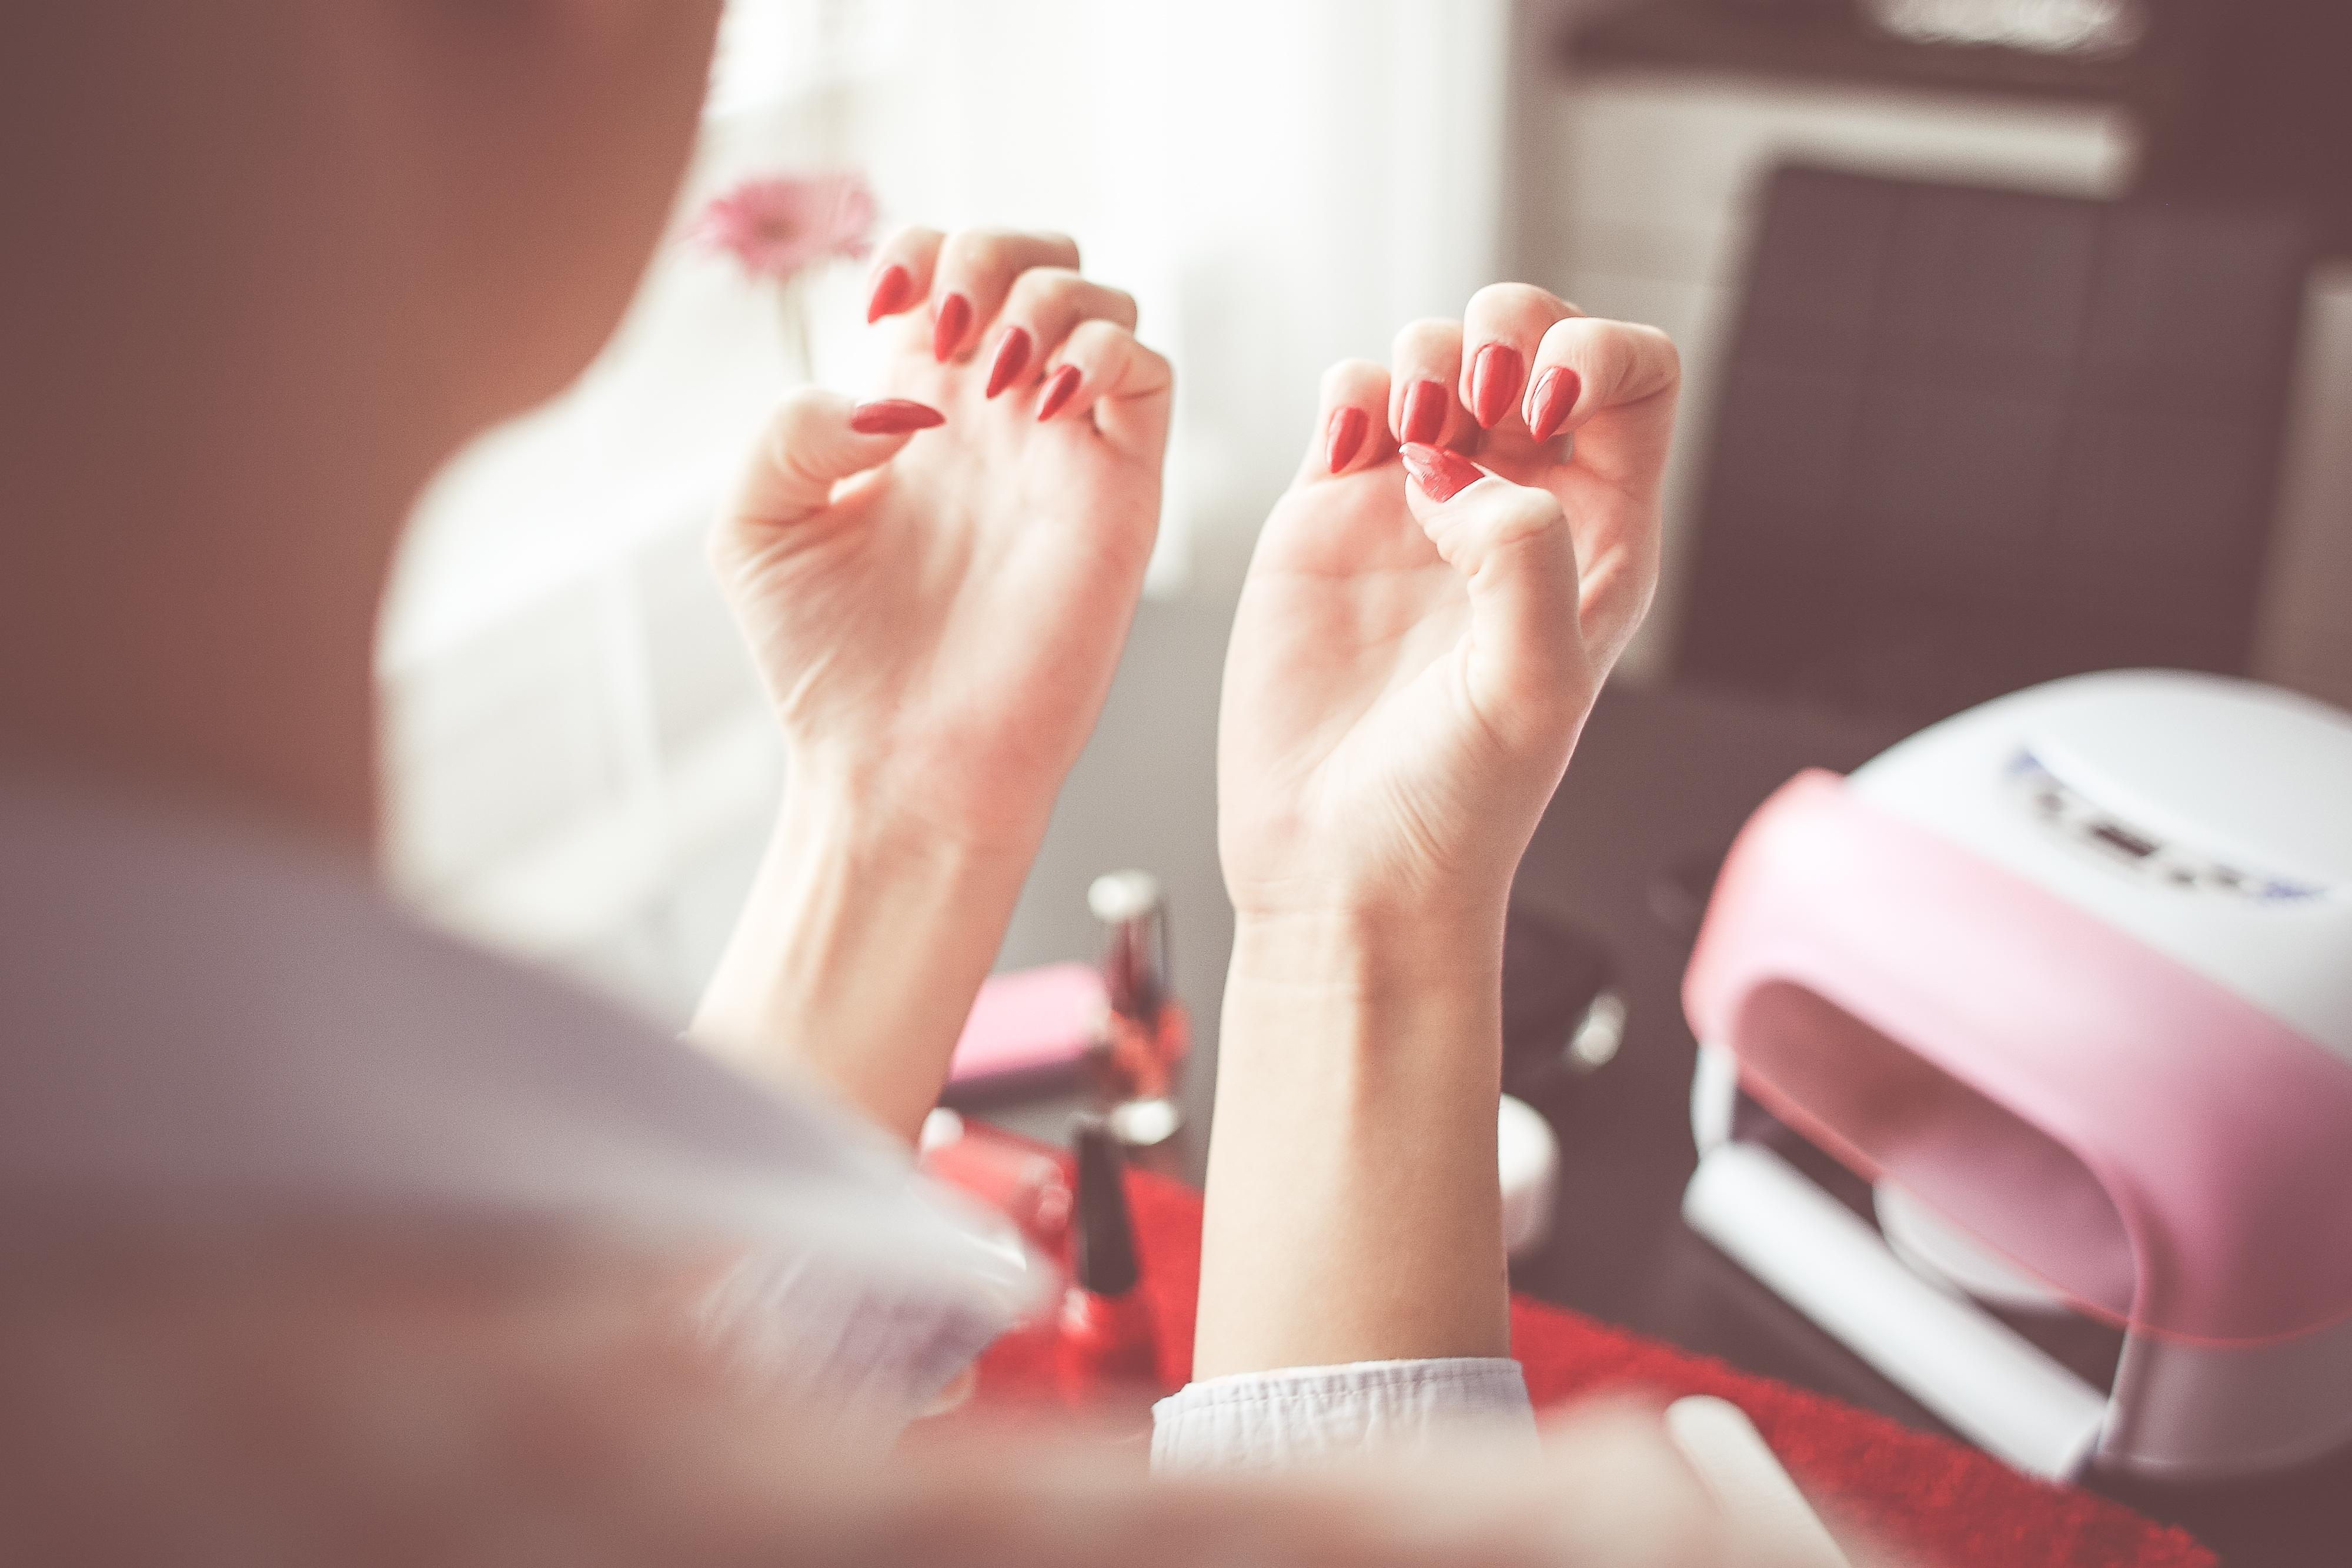 Woman inspecting her freshly painted red nails